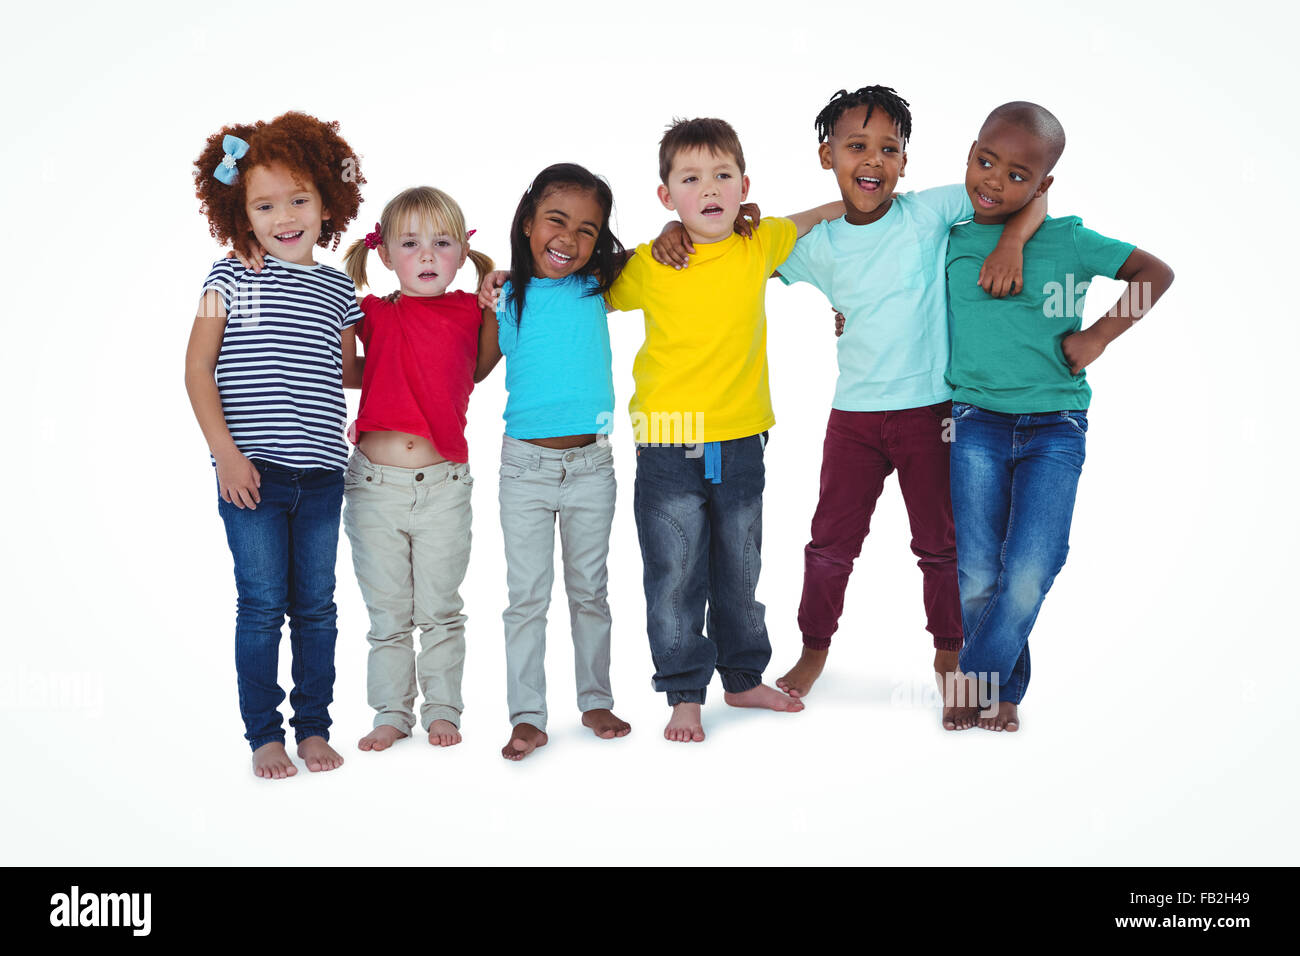 Cute barefooted kids hugging and looking at camera - Stock Image